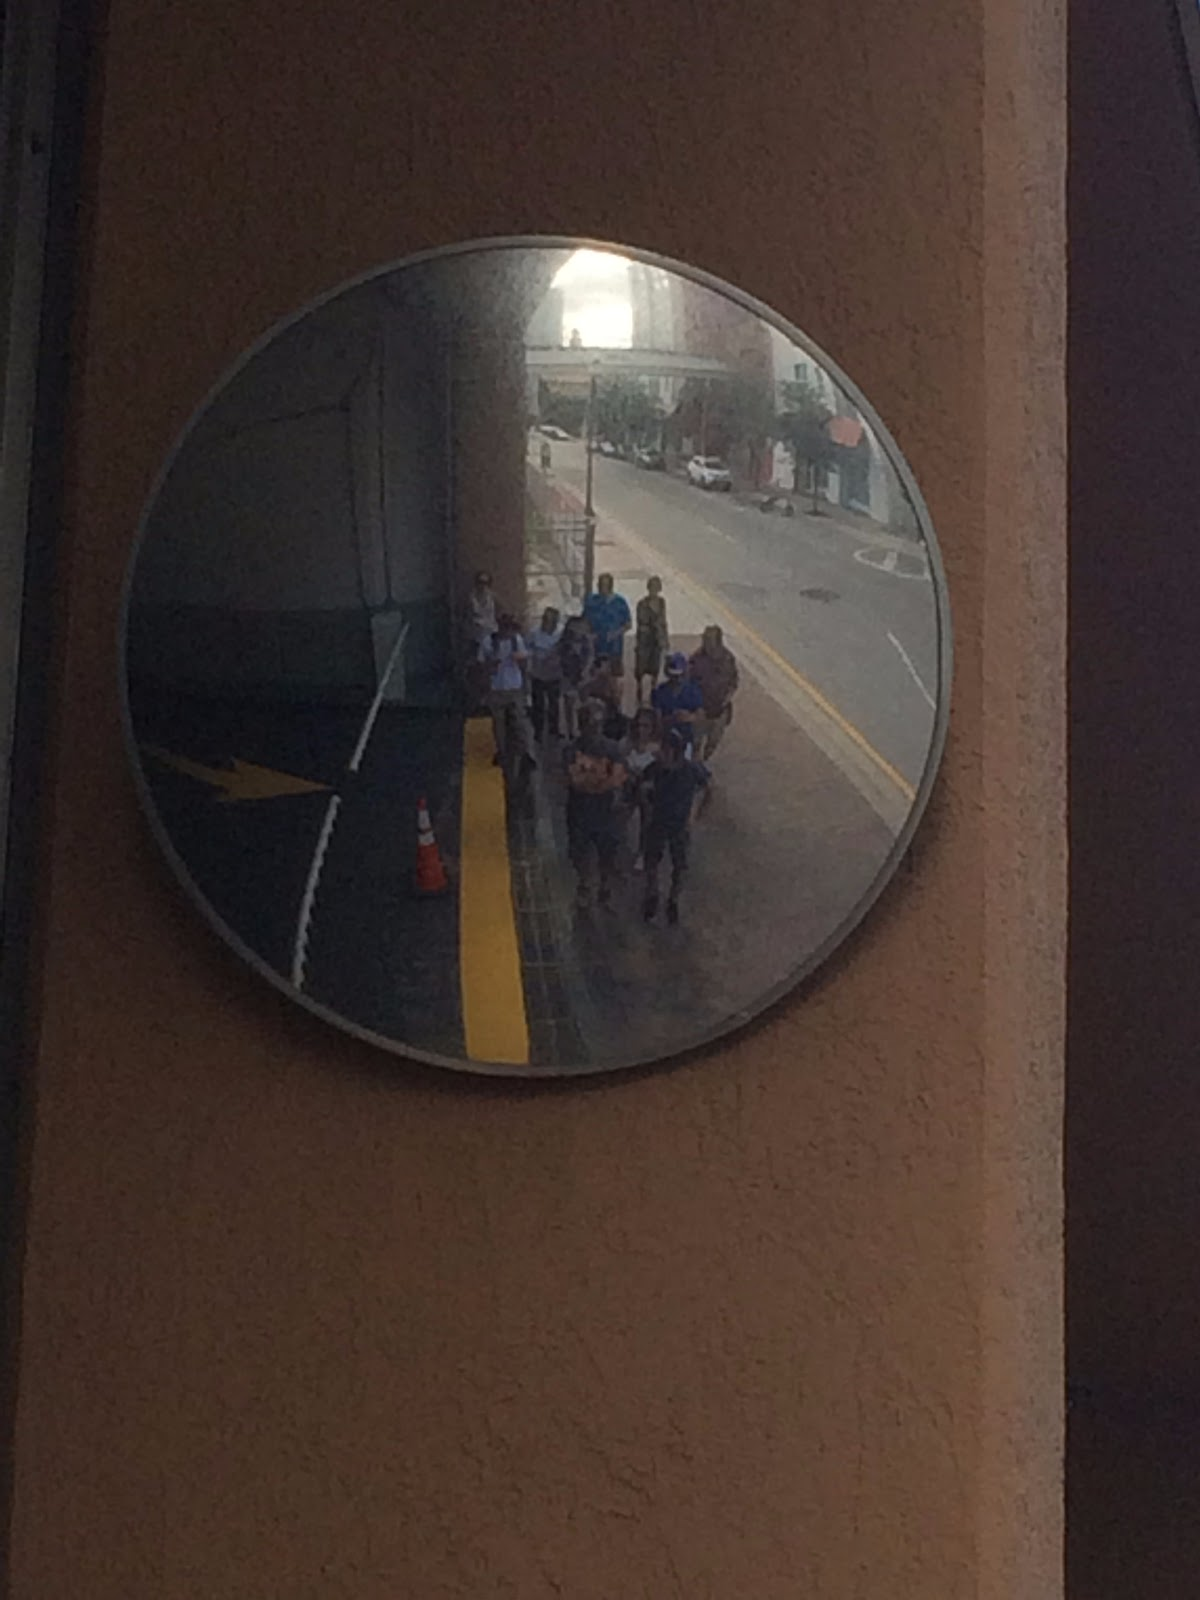 Heather directs the group to gather at a mirror and take a picture together.